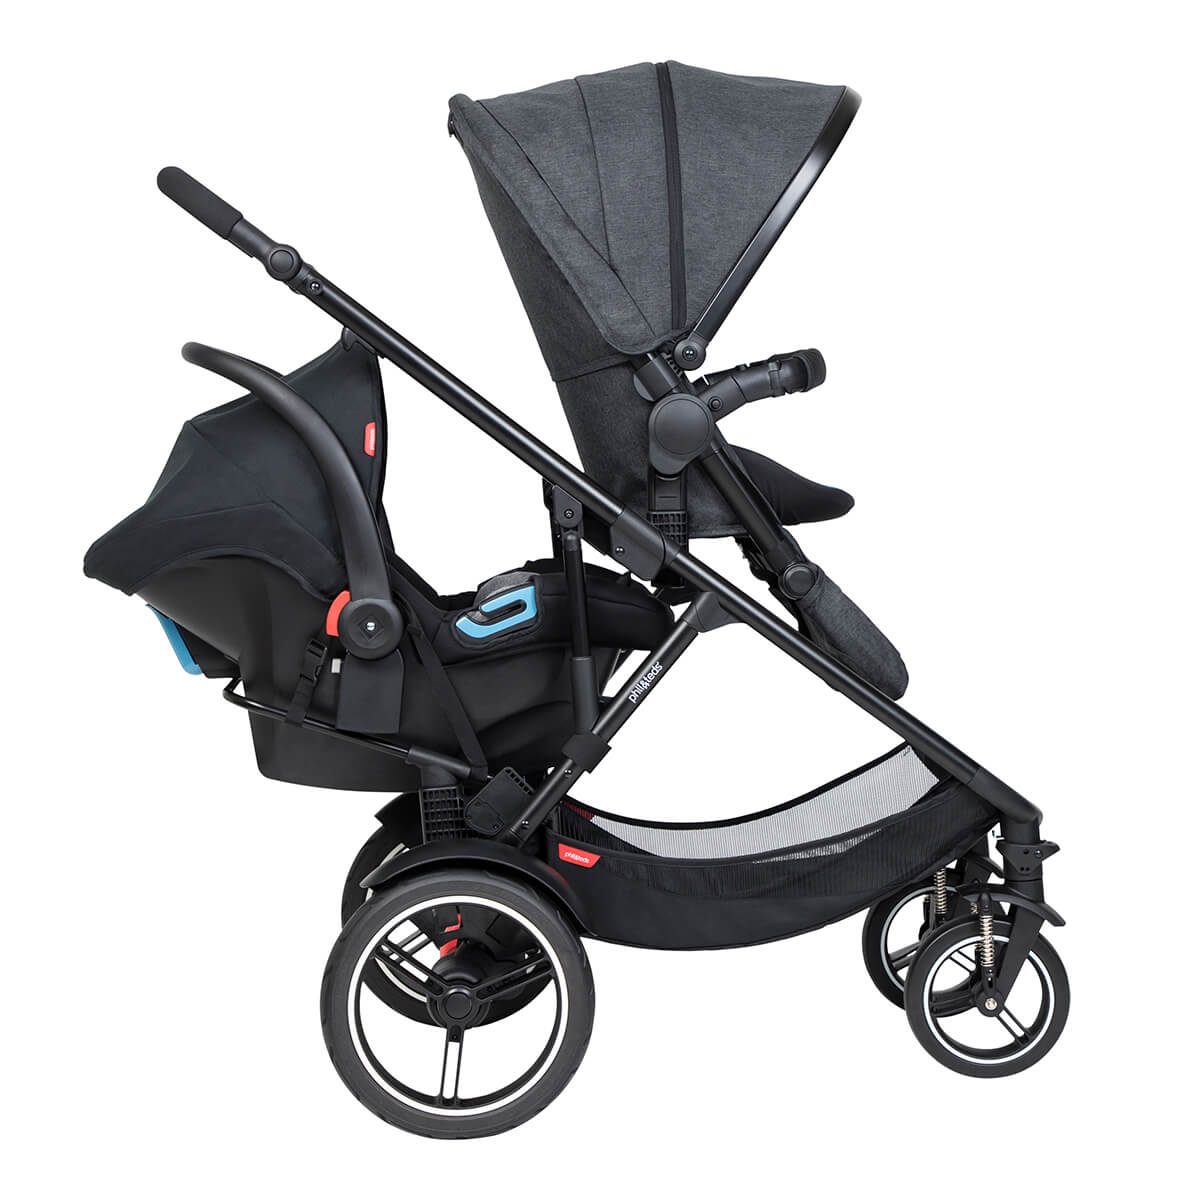 https://cdn.accentuate.io/4509529276504/19272668282968/philteds-voyager-buggy-in-forward-facing-mode-with-travel-system-in-the-rear-v1626484781313.jpg?1200x1200